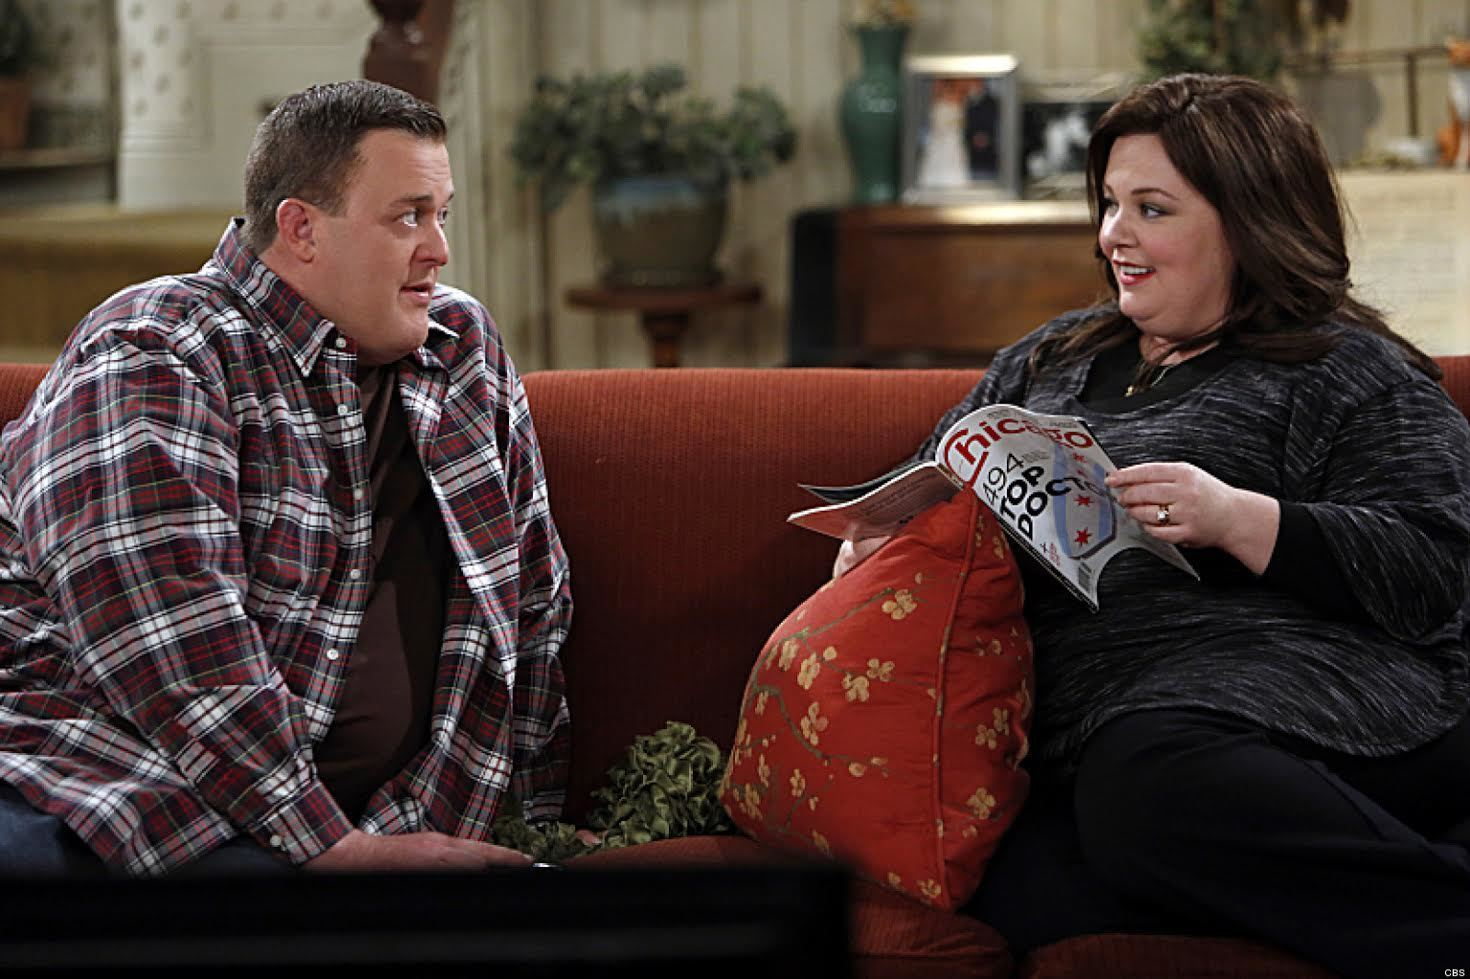 """Mike the Tease"" -- Mike studies male fertility and visits a clinic to ensure that his swimmers are up to the task of starting a family with Molly. Meanwhile, Vince gets a new job selling vacuum cleaners door-to-door, on MIKE & MOLLY, Monday, Feb. 18 (9:30-10:00 PM, ET/PT) on the CBS Television Network. Pictured L-R: Bily Gardell as Mike and Melissa McCarthy as Molly Photo: Cliff Lipson/CBS �©2013 CBS Broadcasting, Inc. All Rights Reserved."